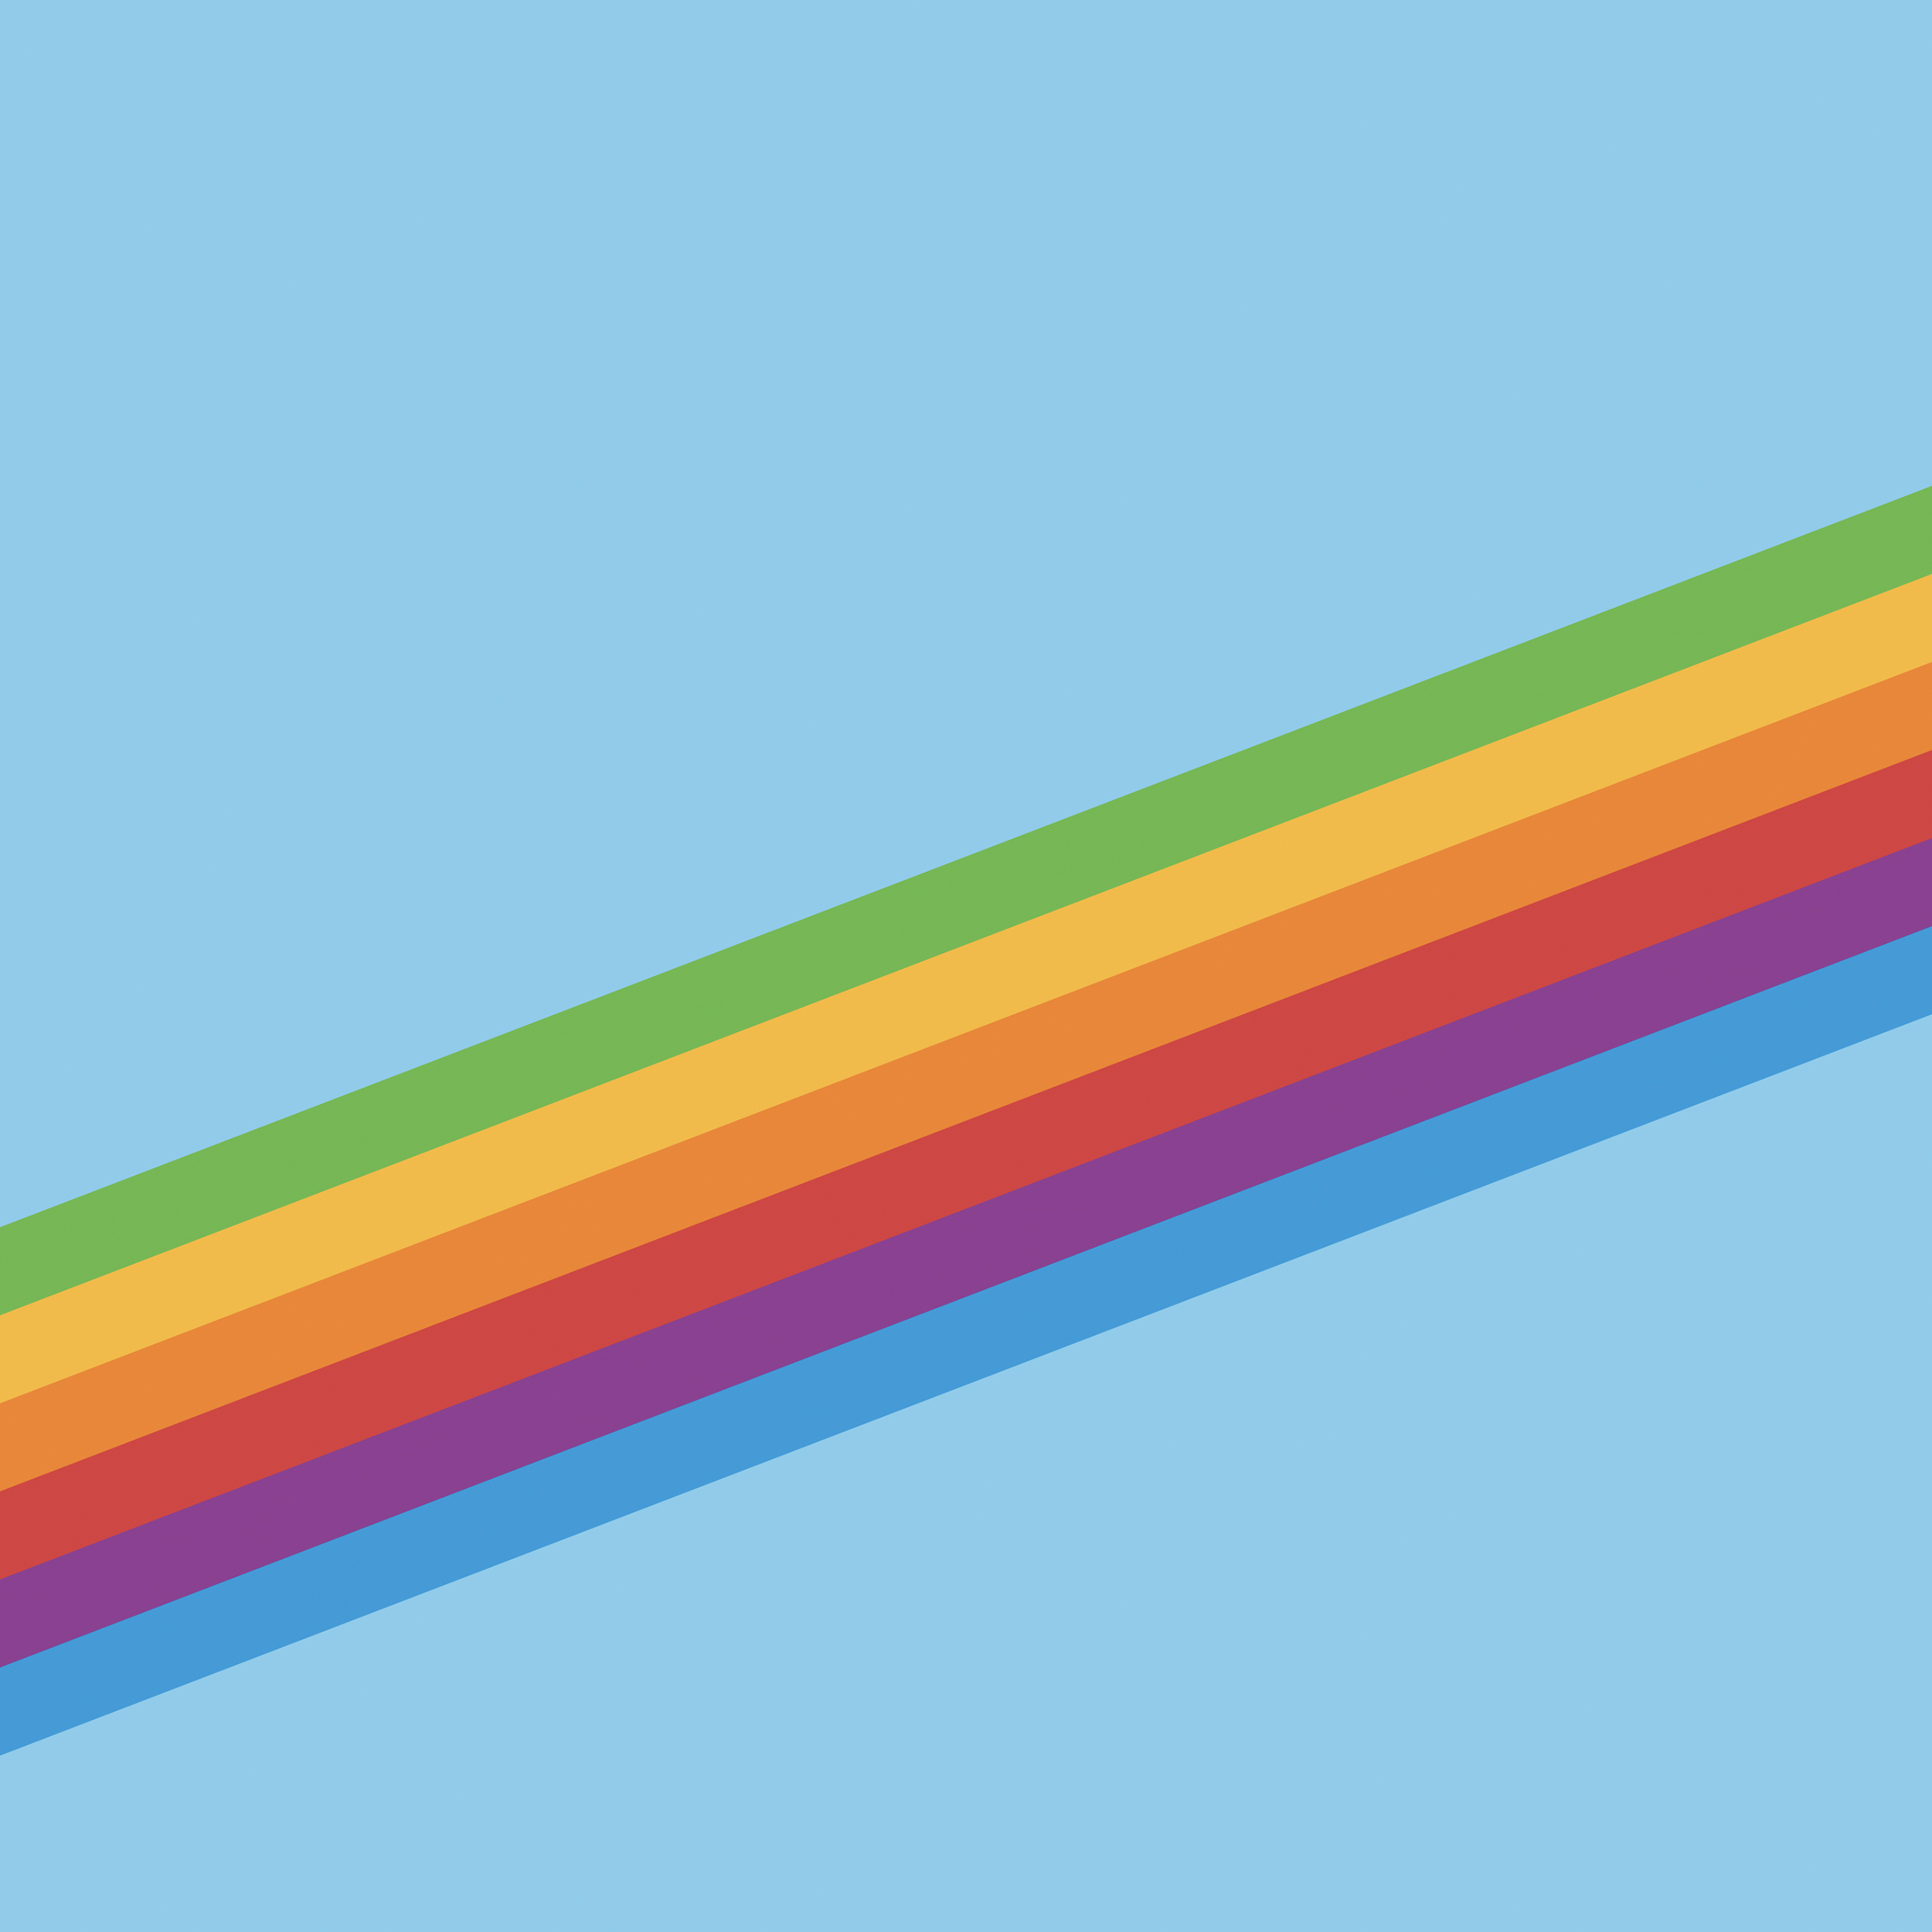 Download the new ios 11 wallpapers for Rainbow color stripe watch